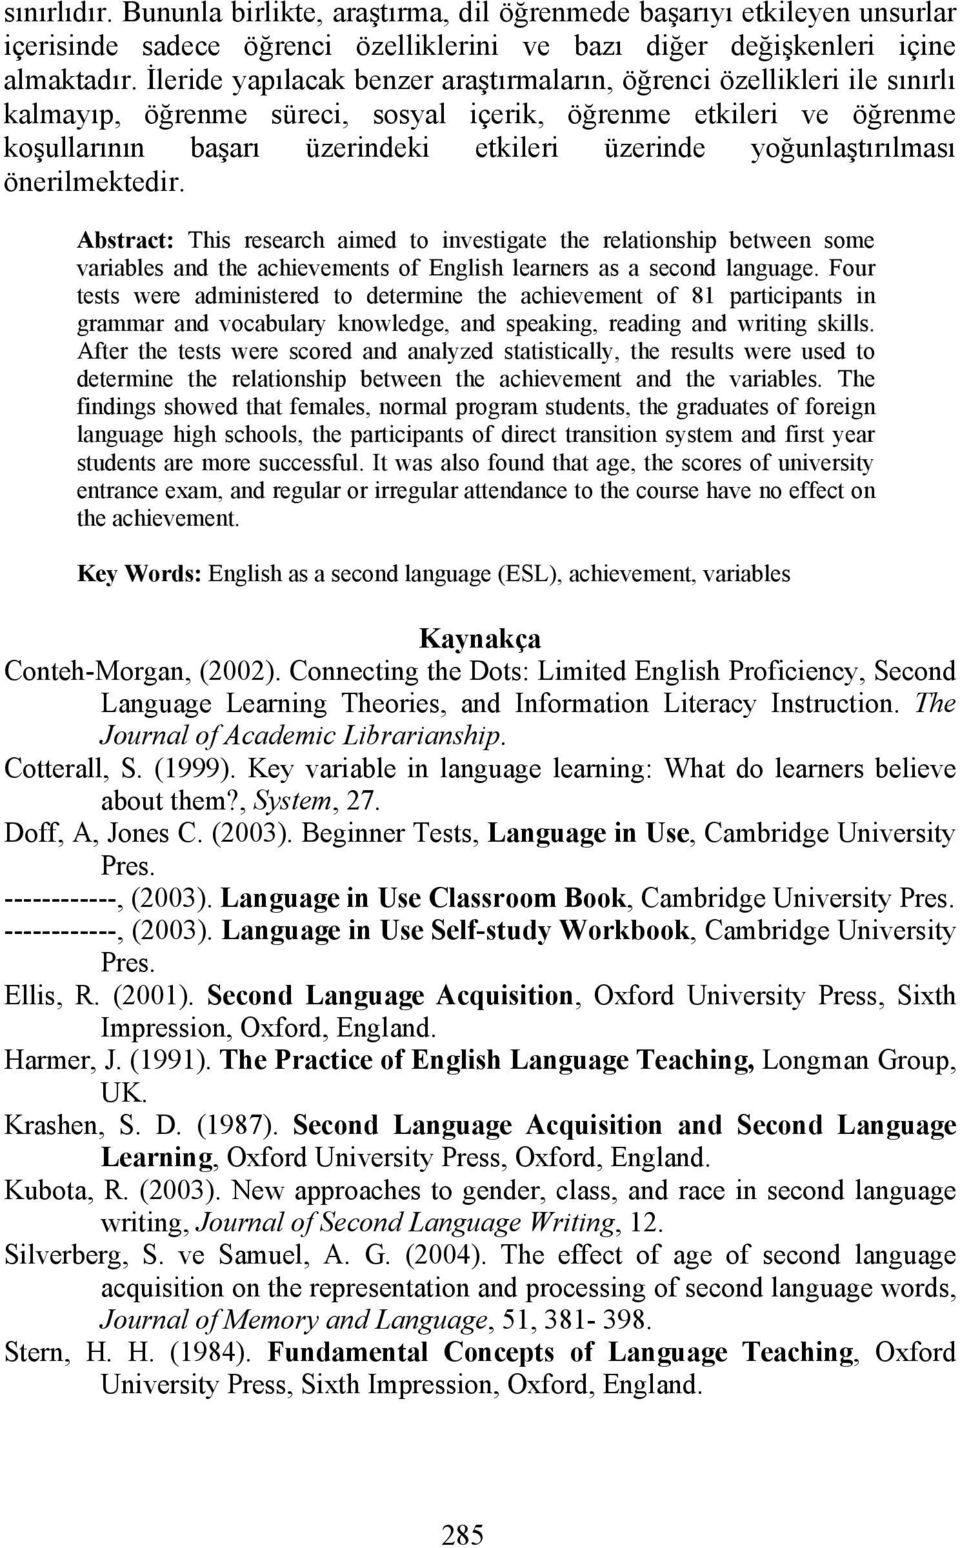 yoğunlaştırılması önerilmektedir. Abstract: This research aimed to investigate the relationship between some variables and the achievements of English learners as a second language.